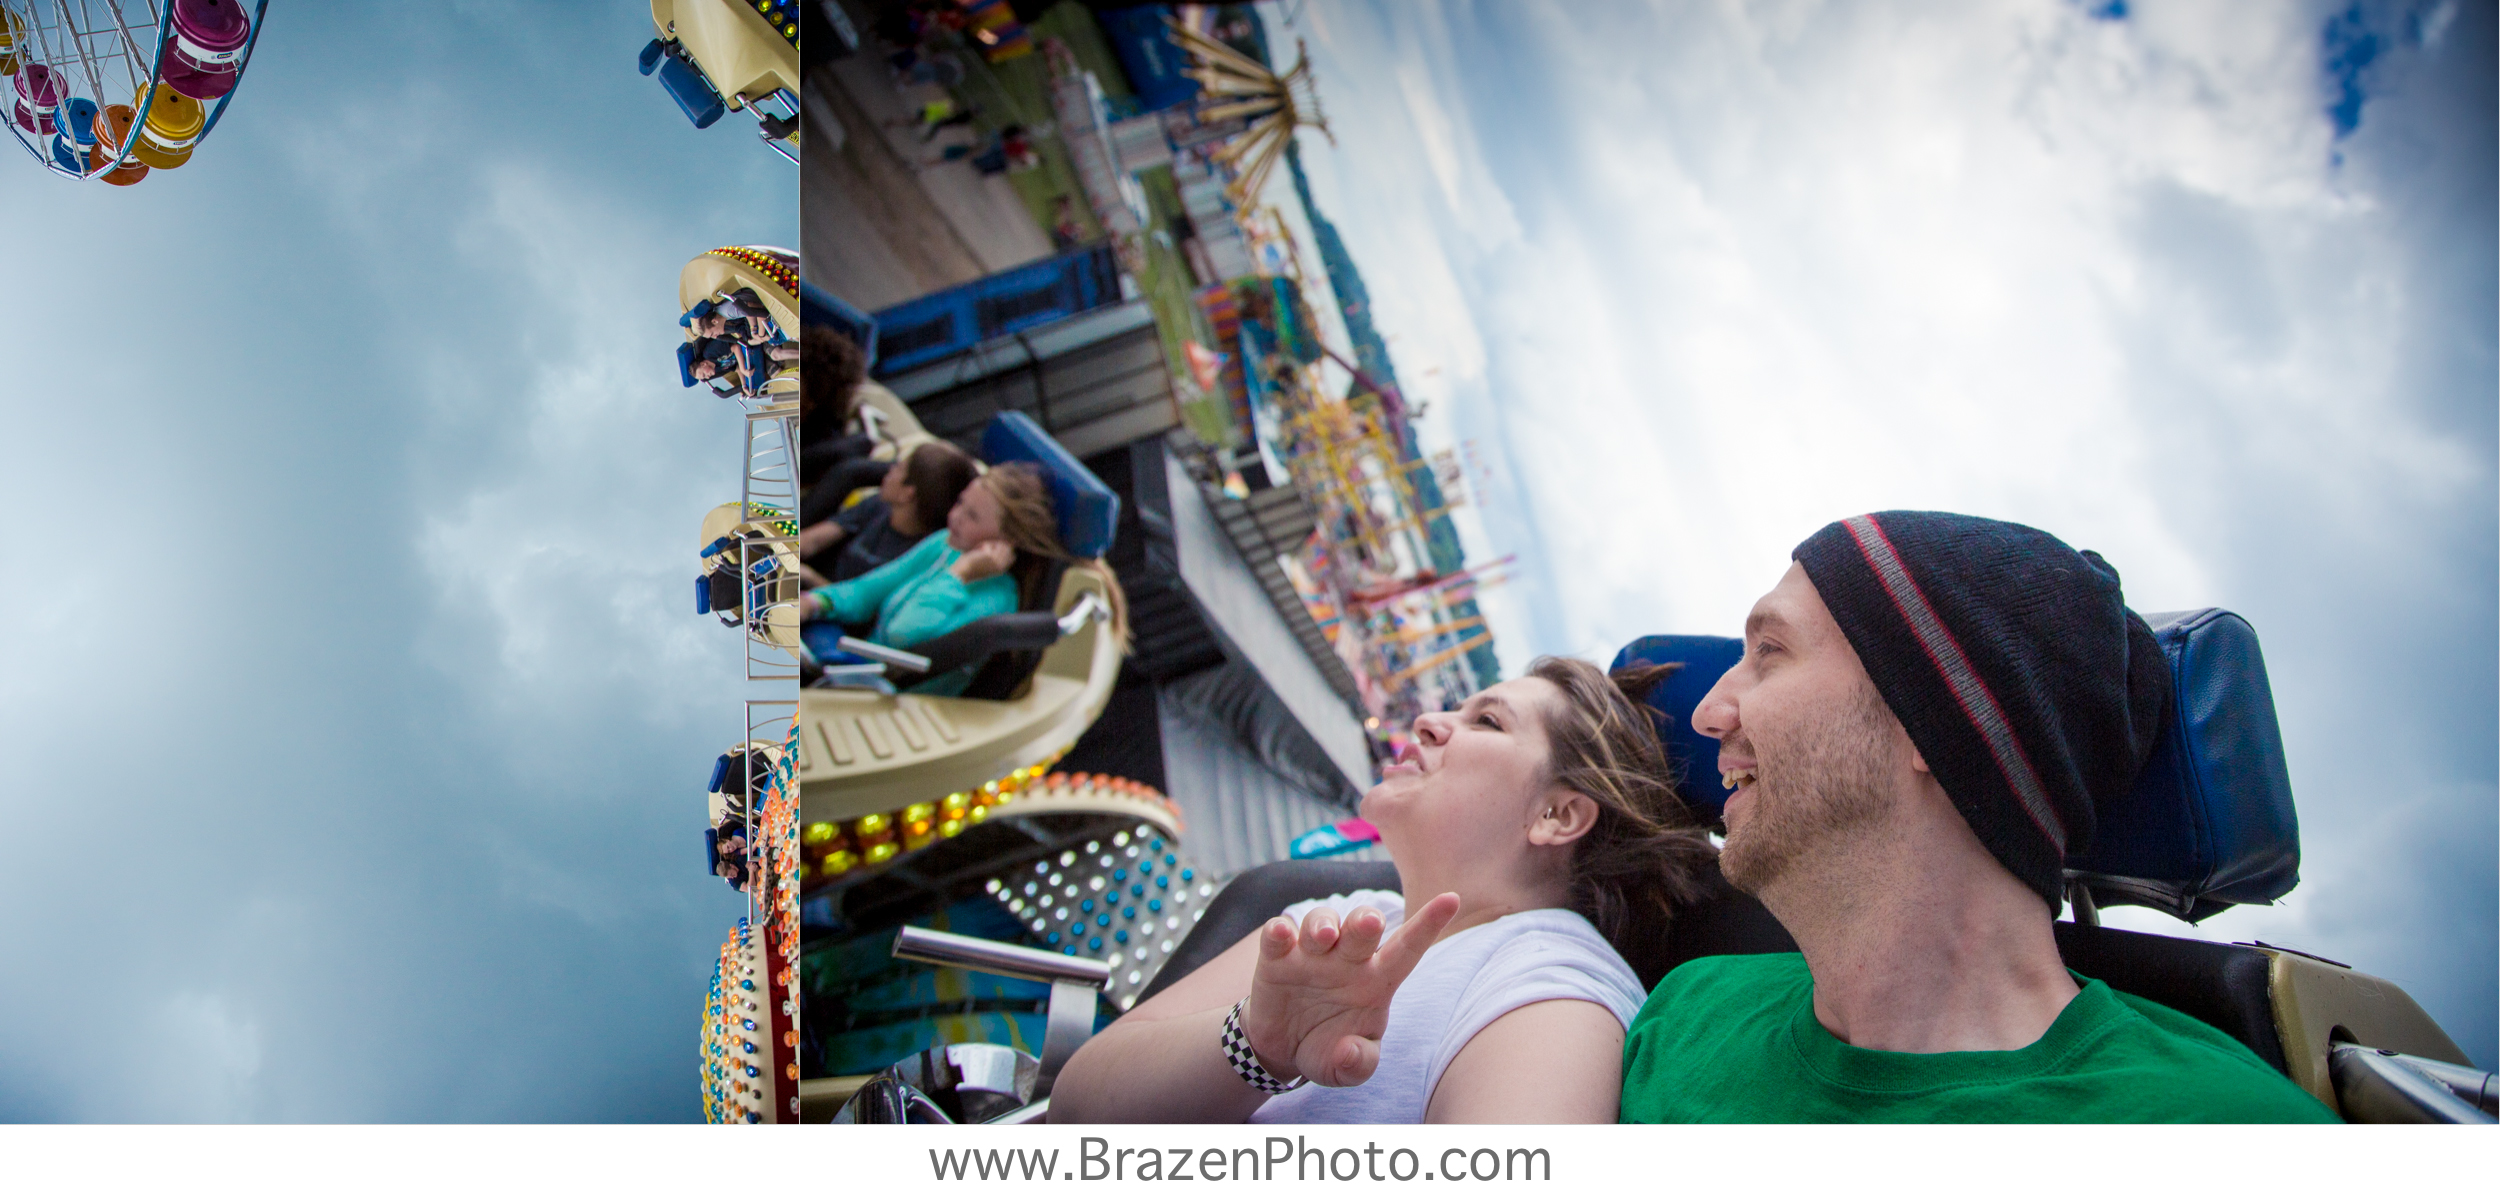 Florida State Fair-Orlando-Brazen Photo-44.jpg